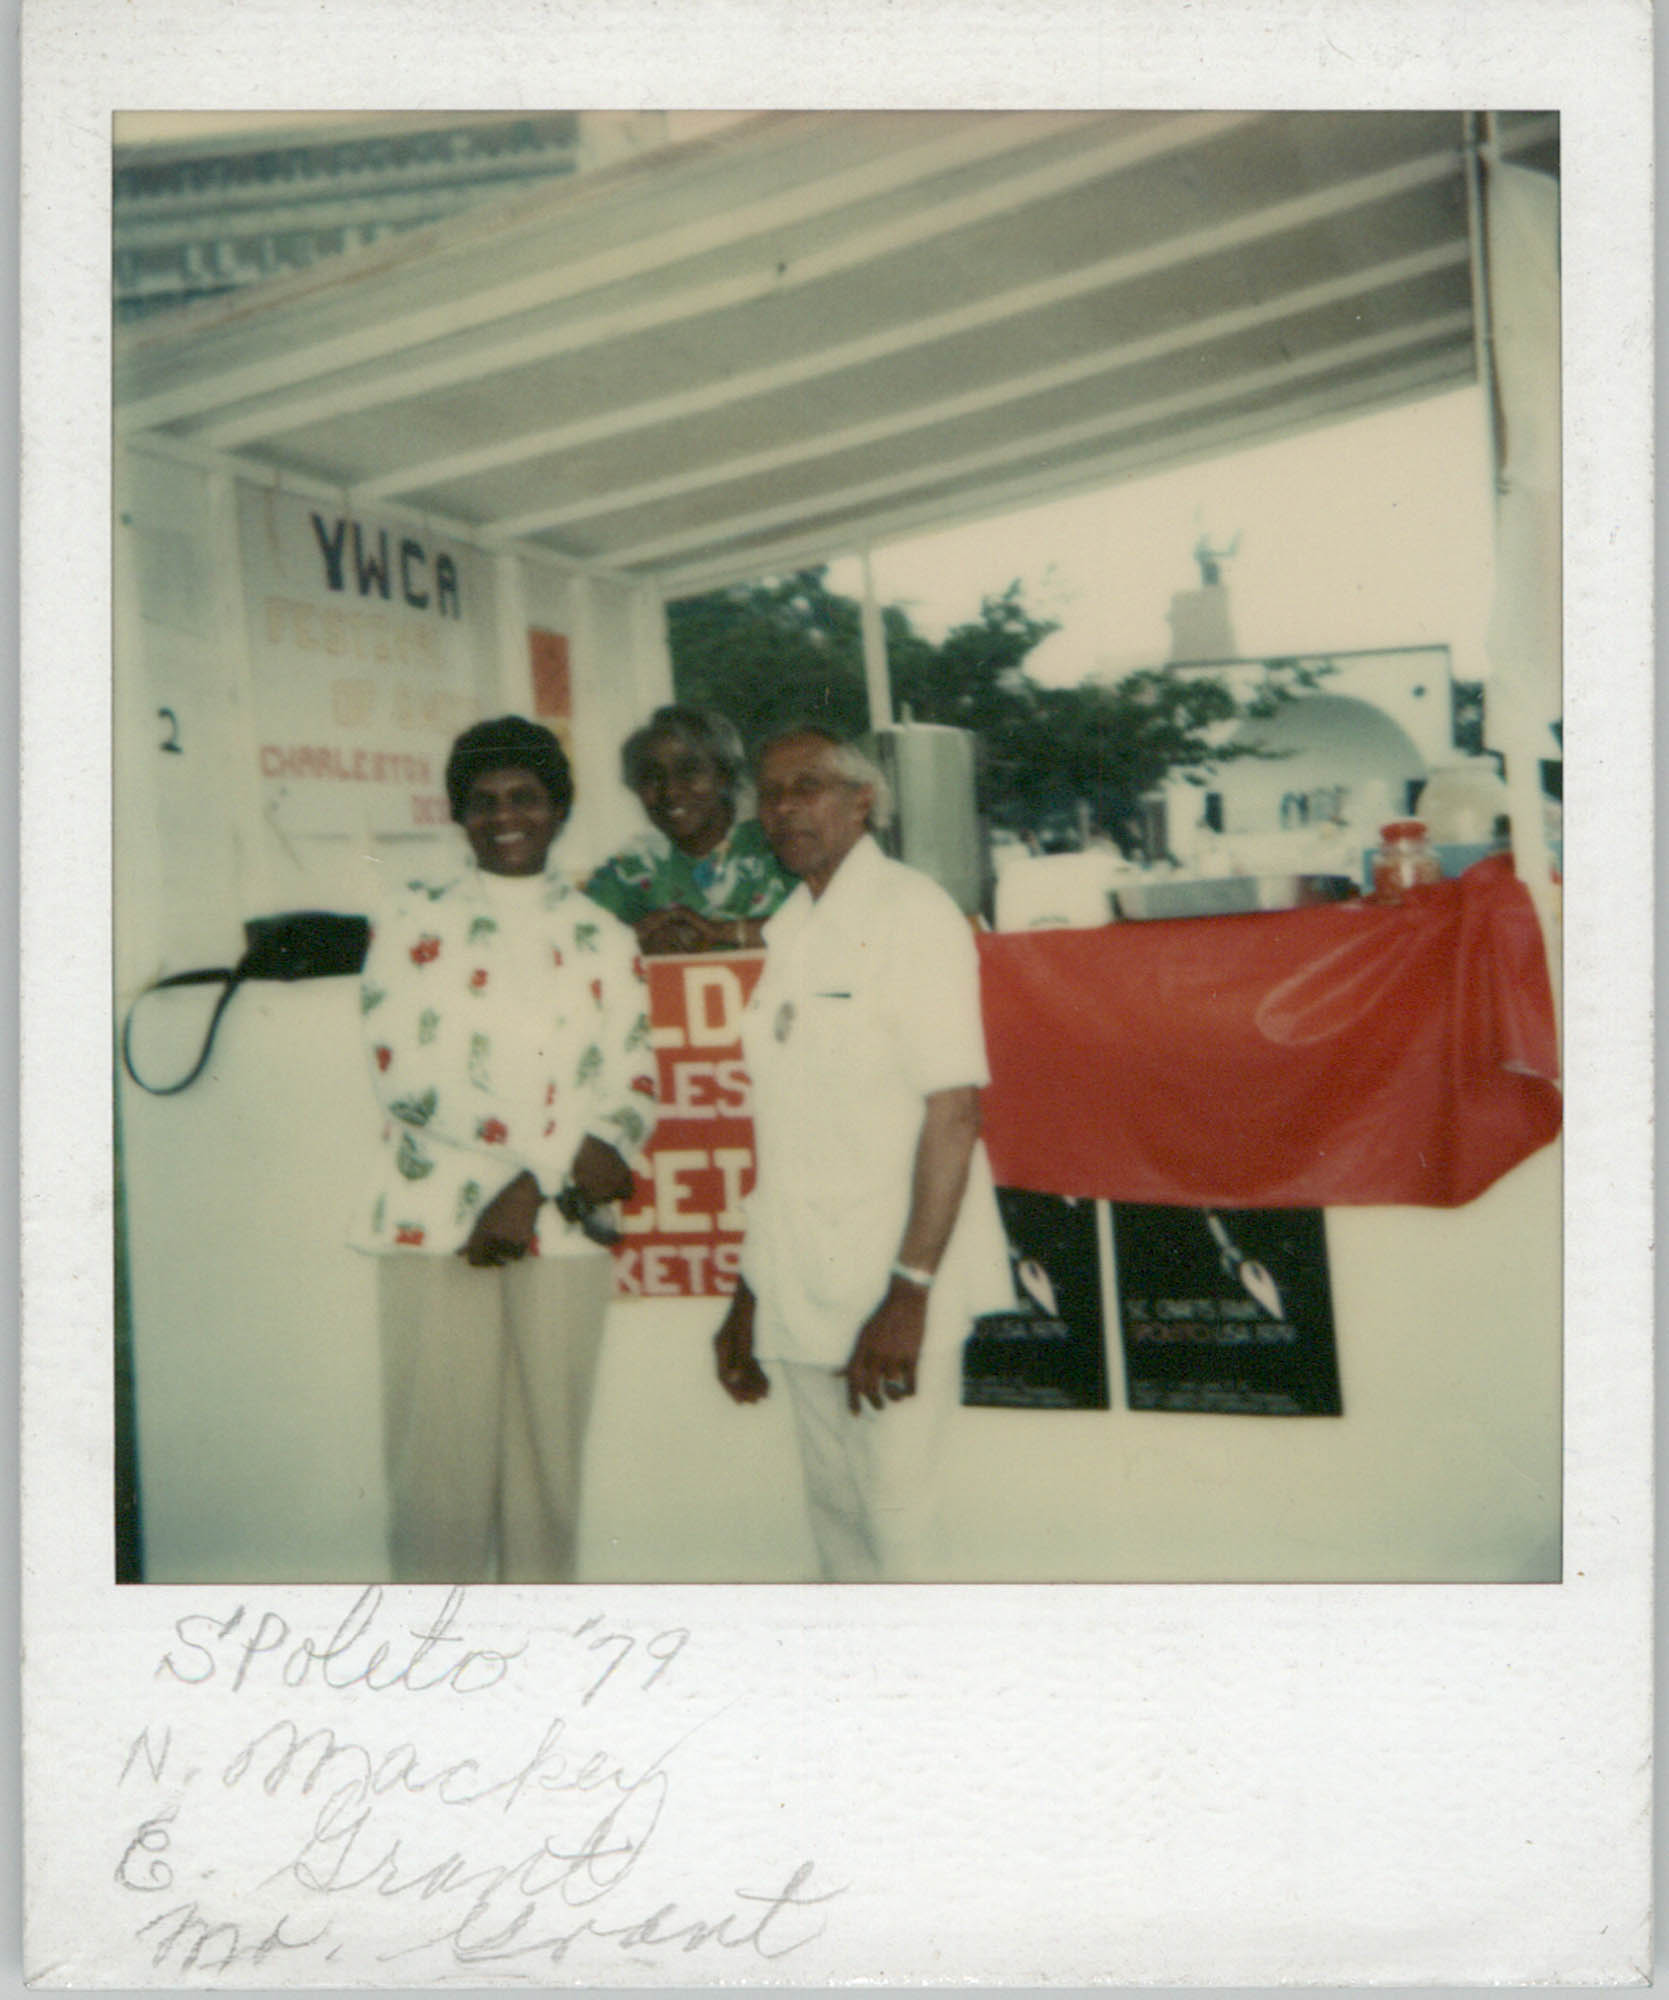 Photograph of N. Mackey, C. Grand, and Mr. Grant, 1979